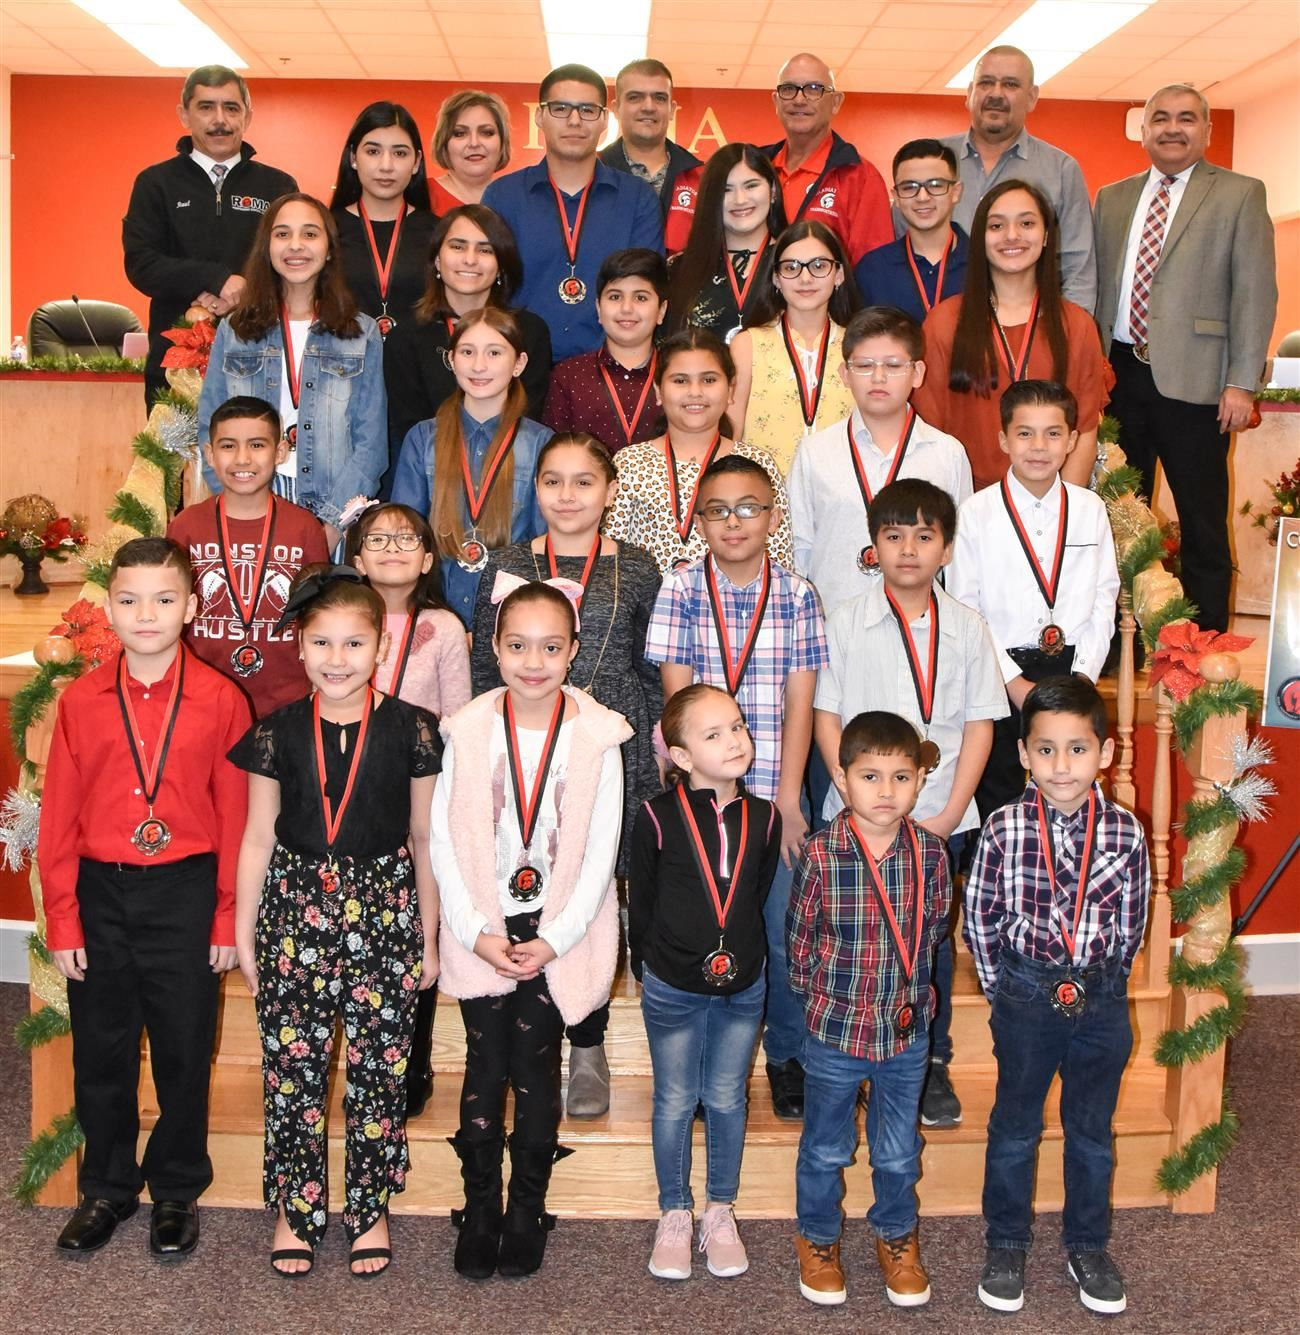 Roma ISD Highlights December 2019 Wall of Fame Honorees